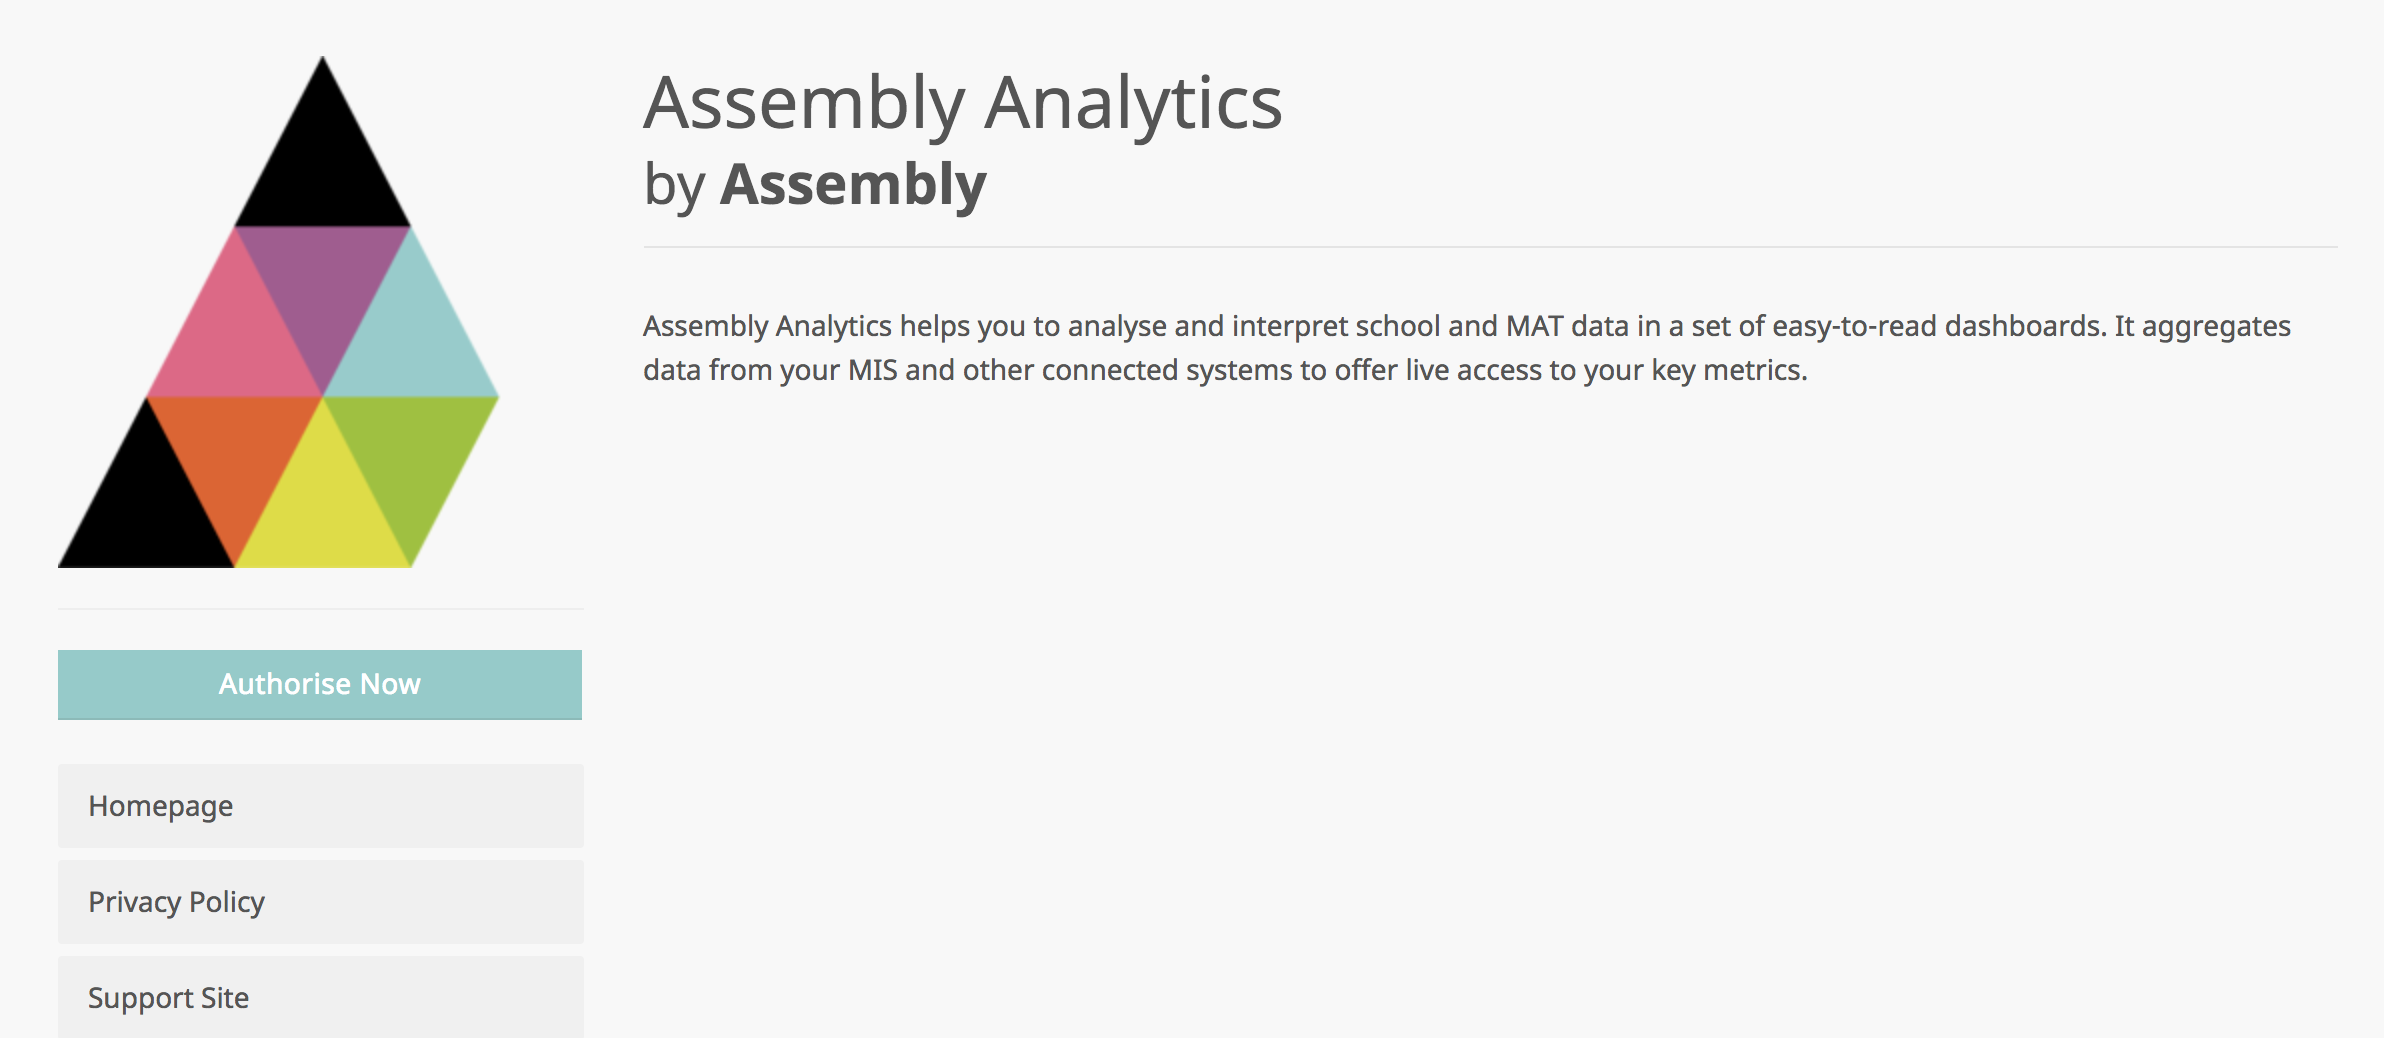 Authorising Assembly Analytics for your MAT - Assembly Education